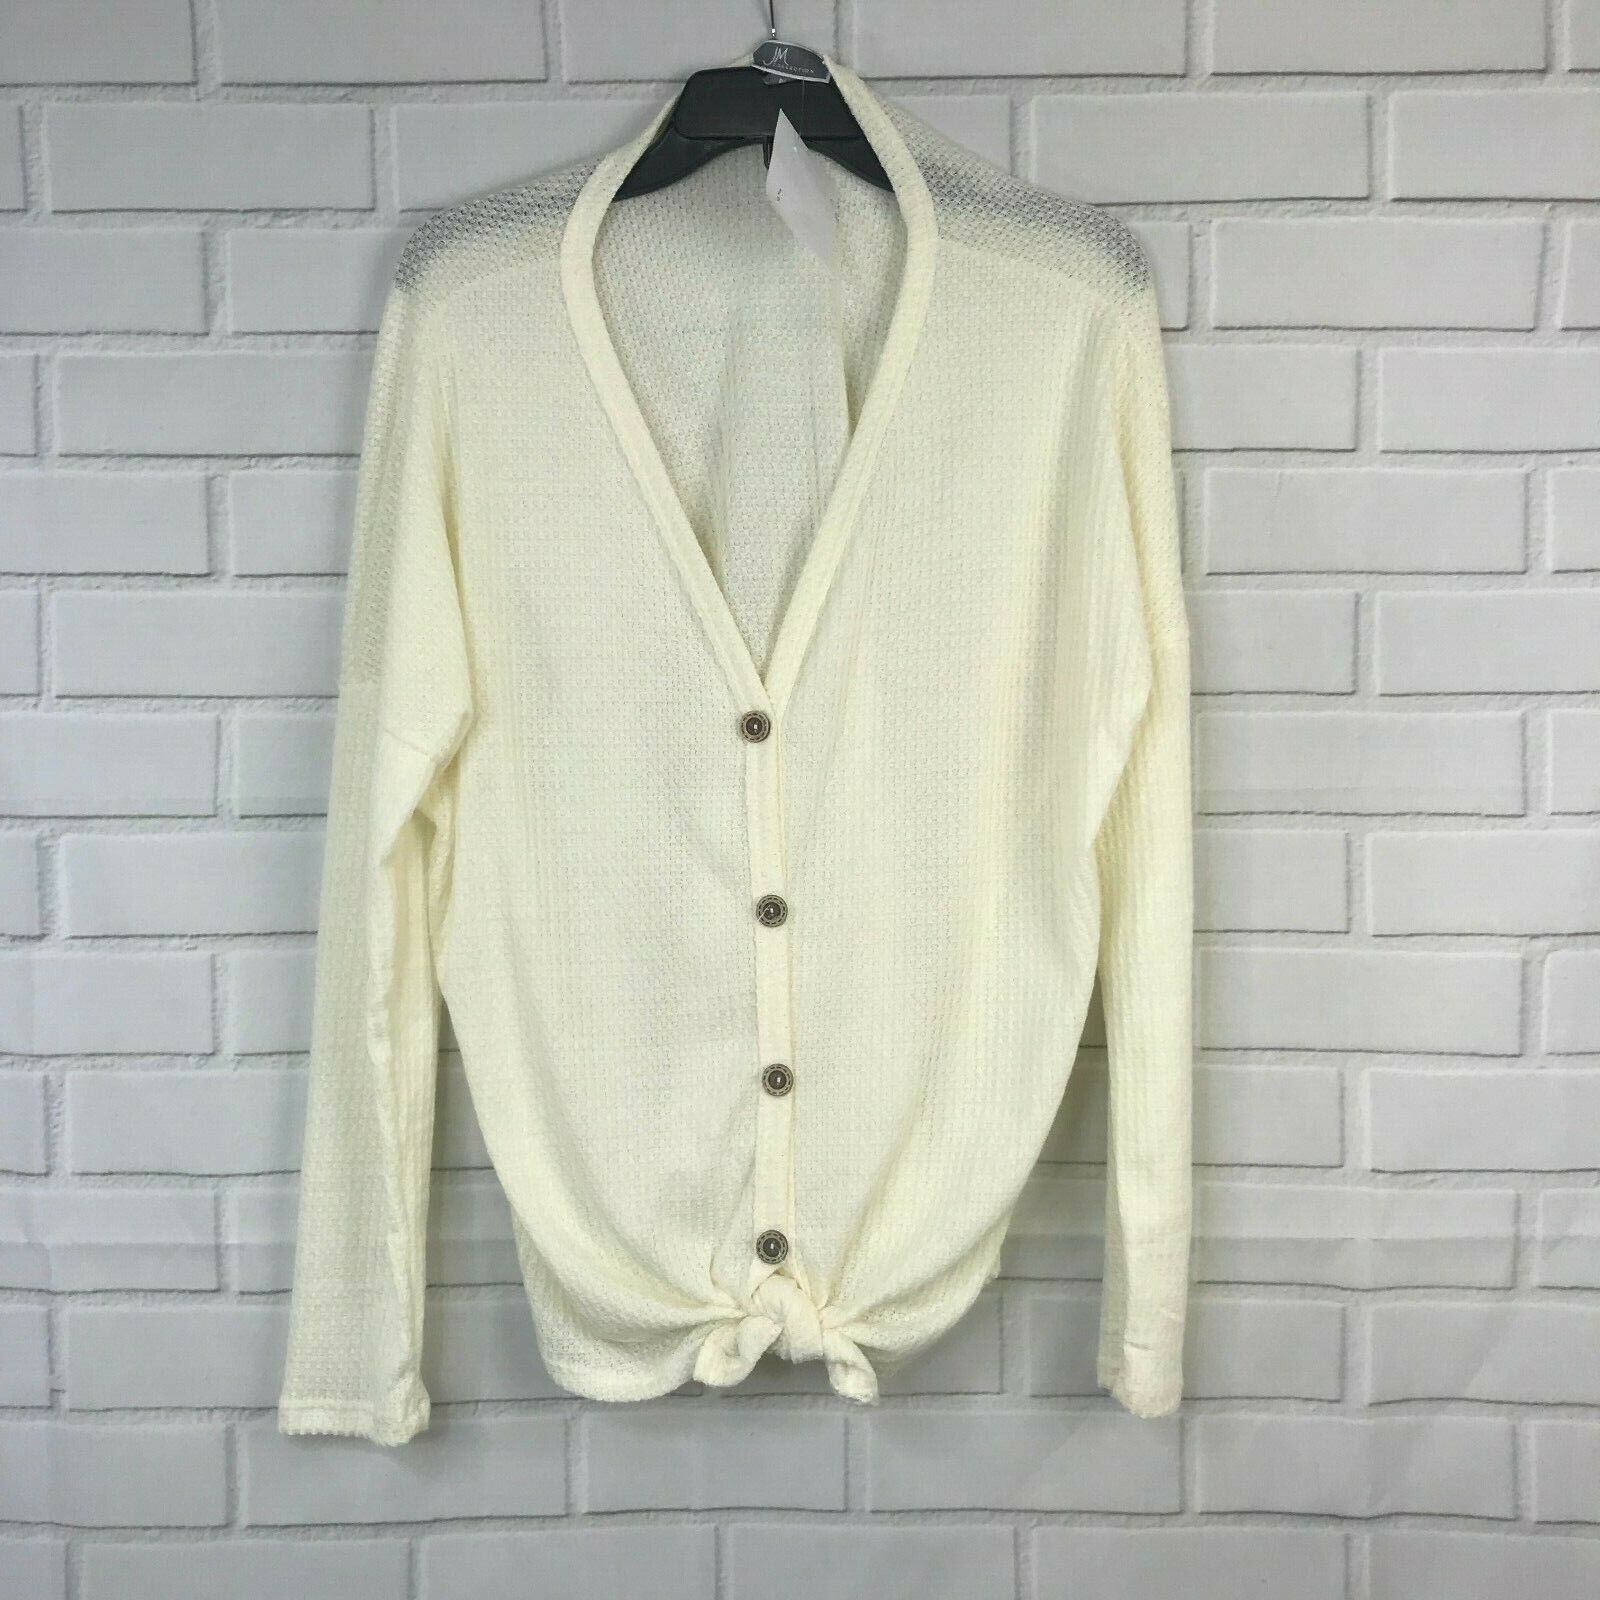 JM Collection Sweater Front Knot Button Down Cardigan Waffle Knit Womens Size PL